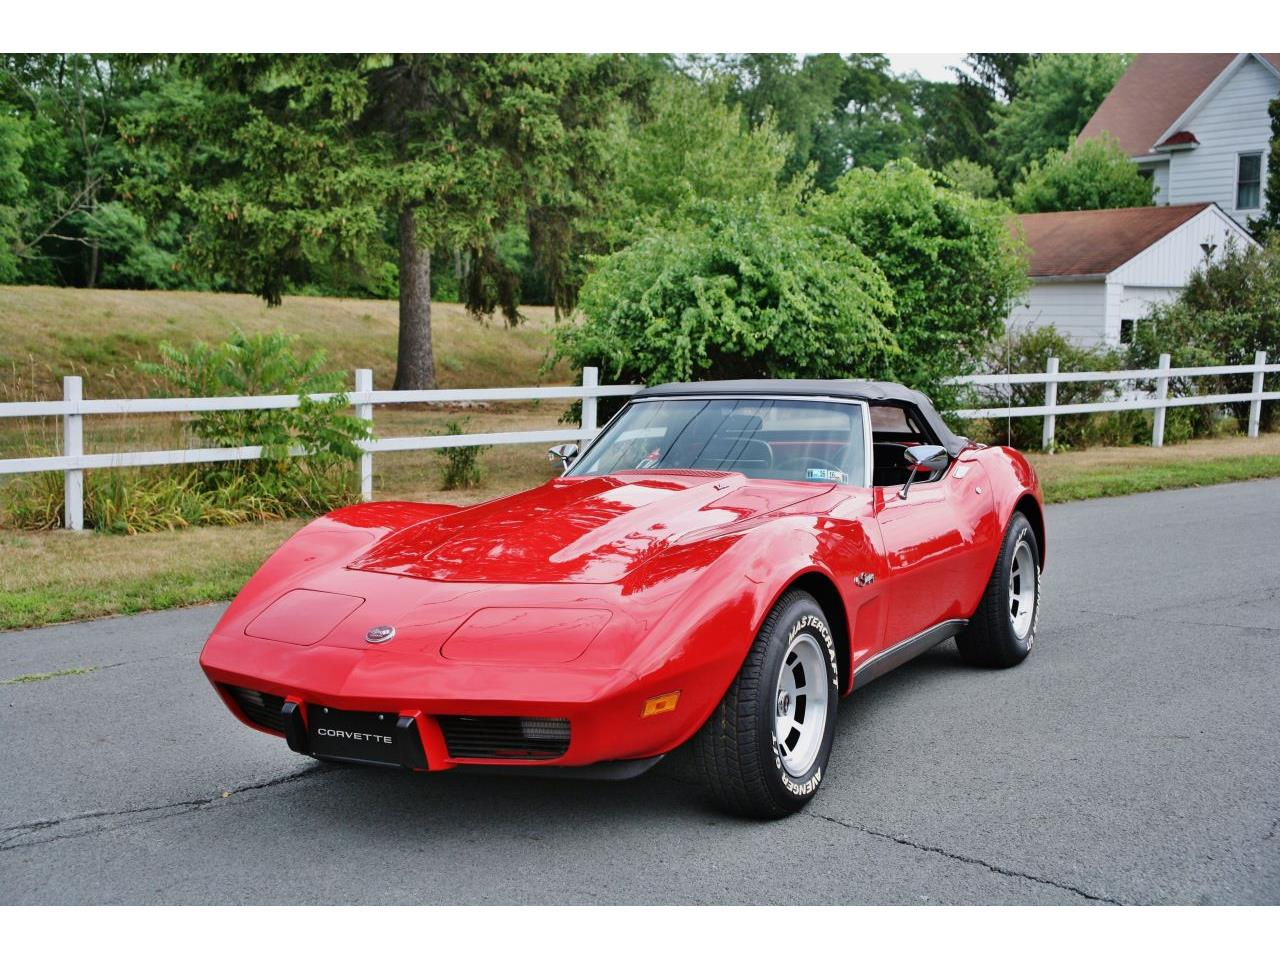 Large Picture of 1975 Chevrolet Corvette located in Pennsylvania - $26,900.00 Offered by Coffee's Sports and Classics - GCY5